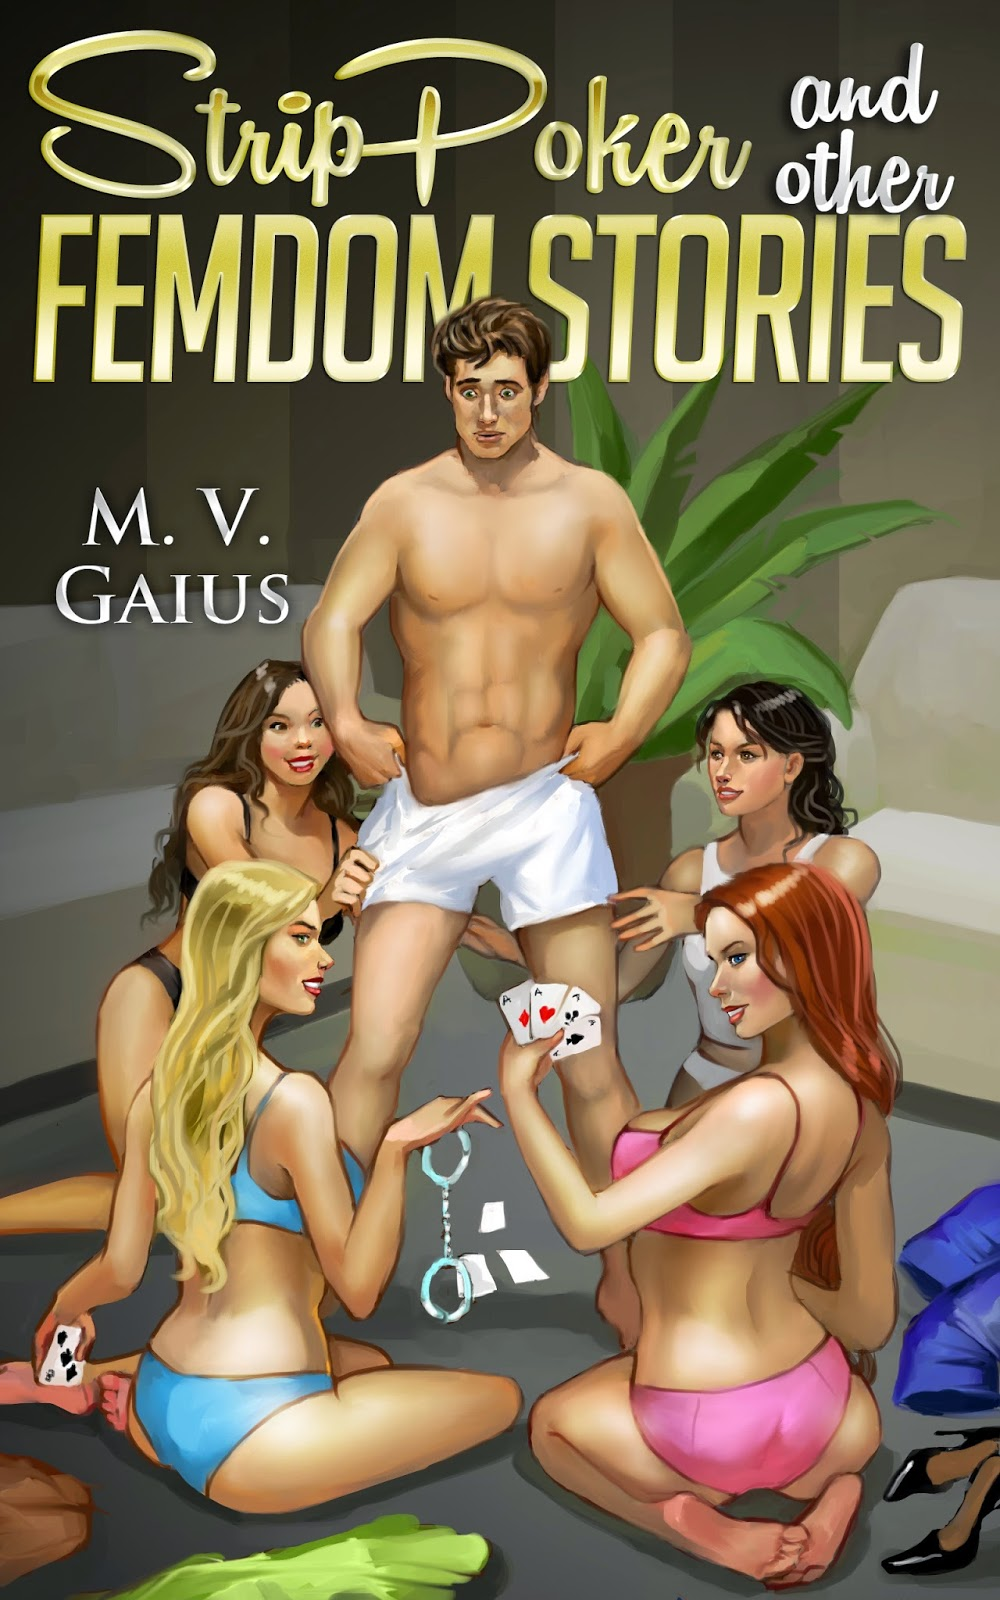 Harmonious i'd femdom forced enema stories would eat